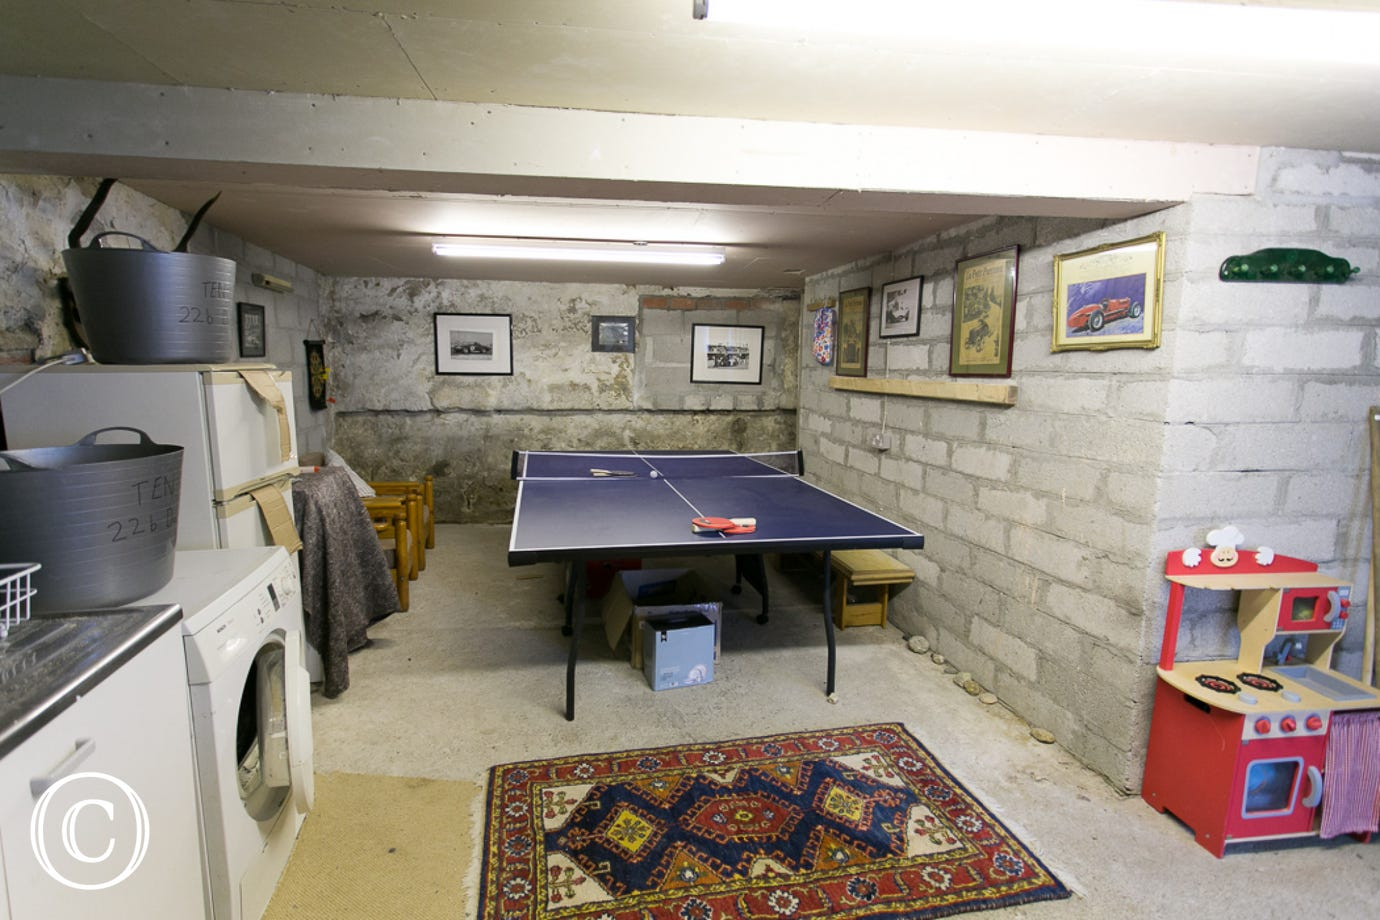 Utility and games room